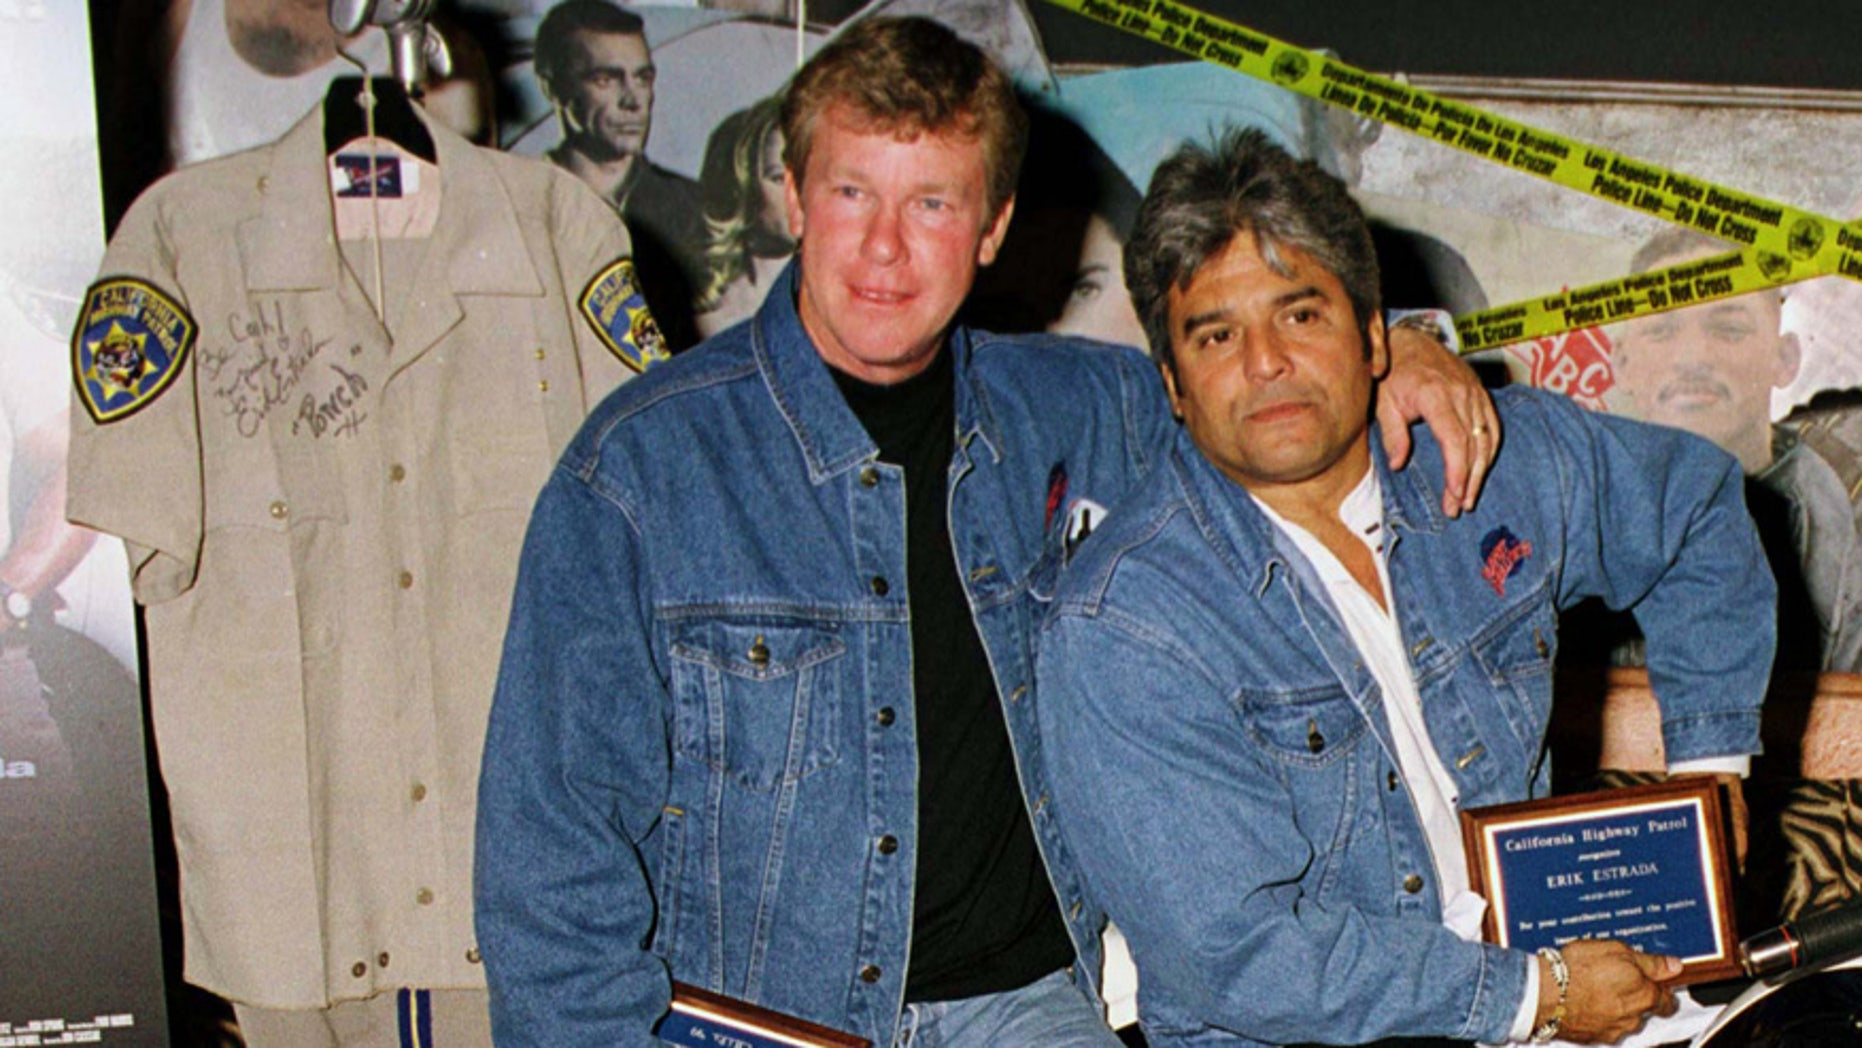 """Actors Larry Wilcox (L) and Erik Estrada, stars of the original television series """"CHiPs"""" pose with a uniform they donated to the memorabilia collection at Planet Hollywood Beverly Hills."""